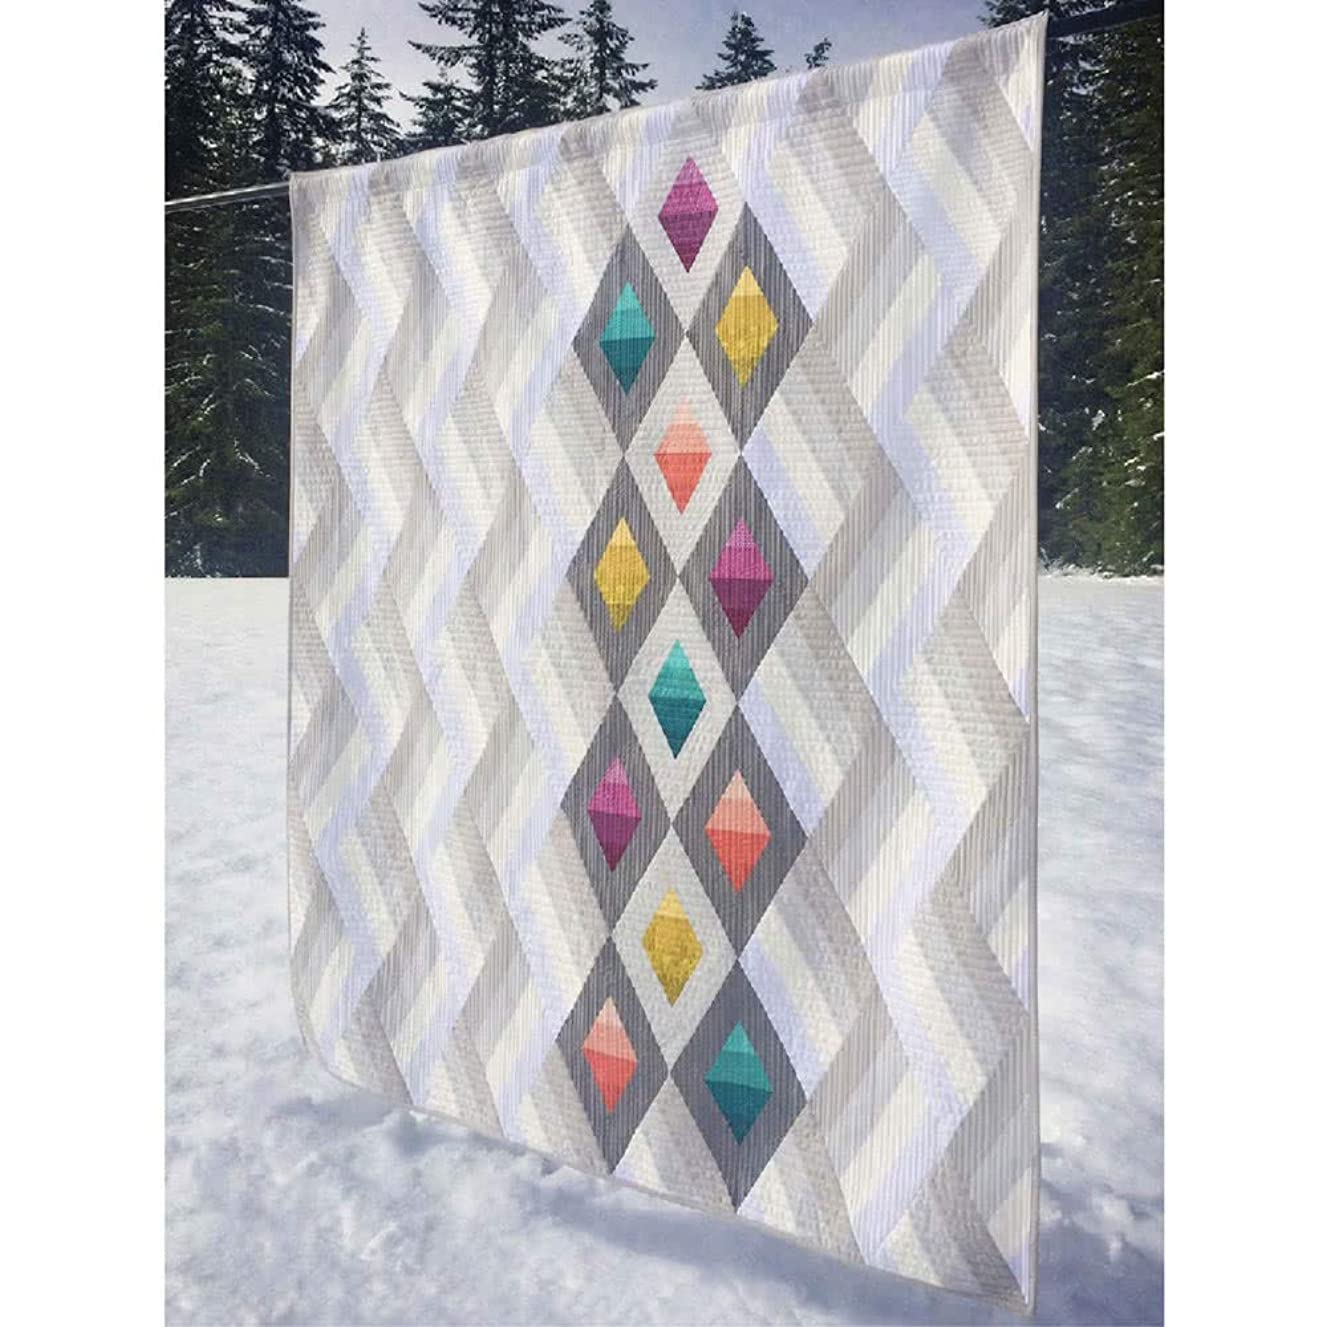 Woven Jewelbox from Cut Loose Press & AQCO - CLPKMS003